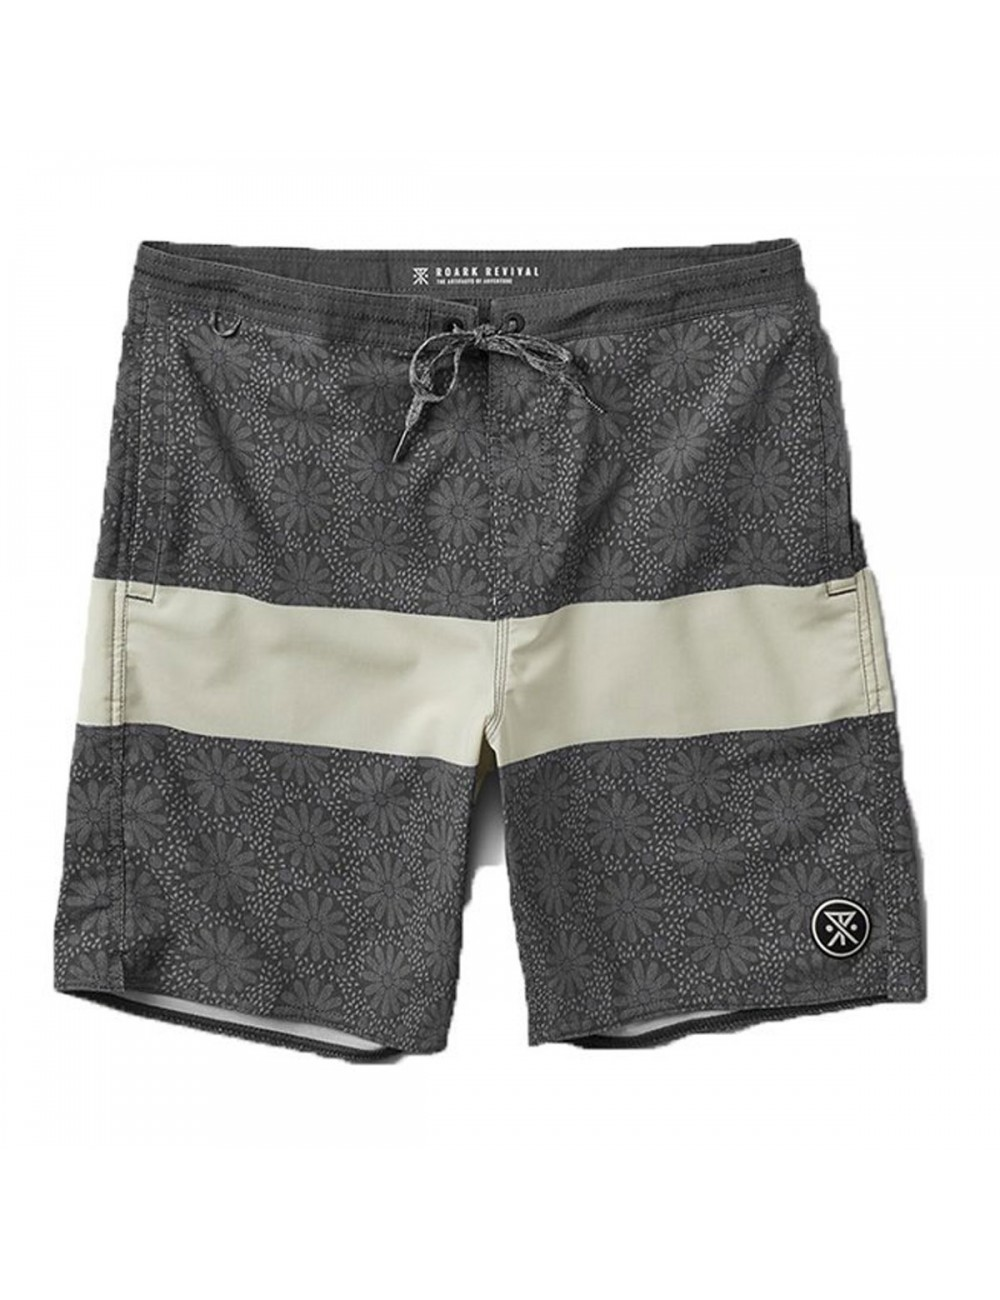 Roark Chiller Sharrons Boardshort - Black_11244